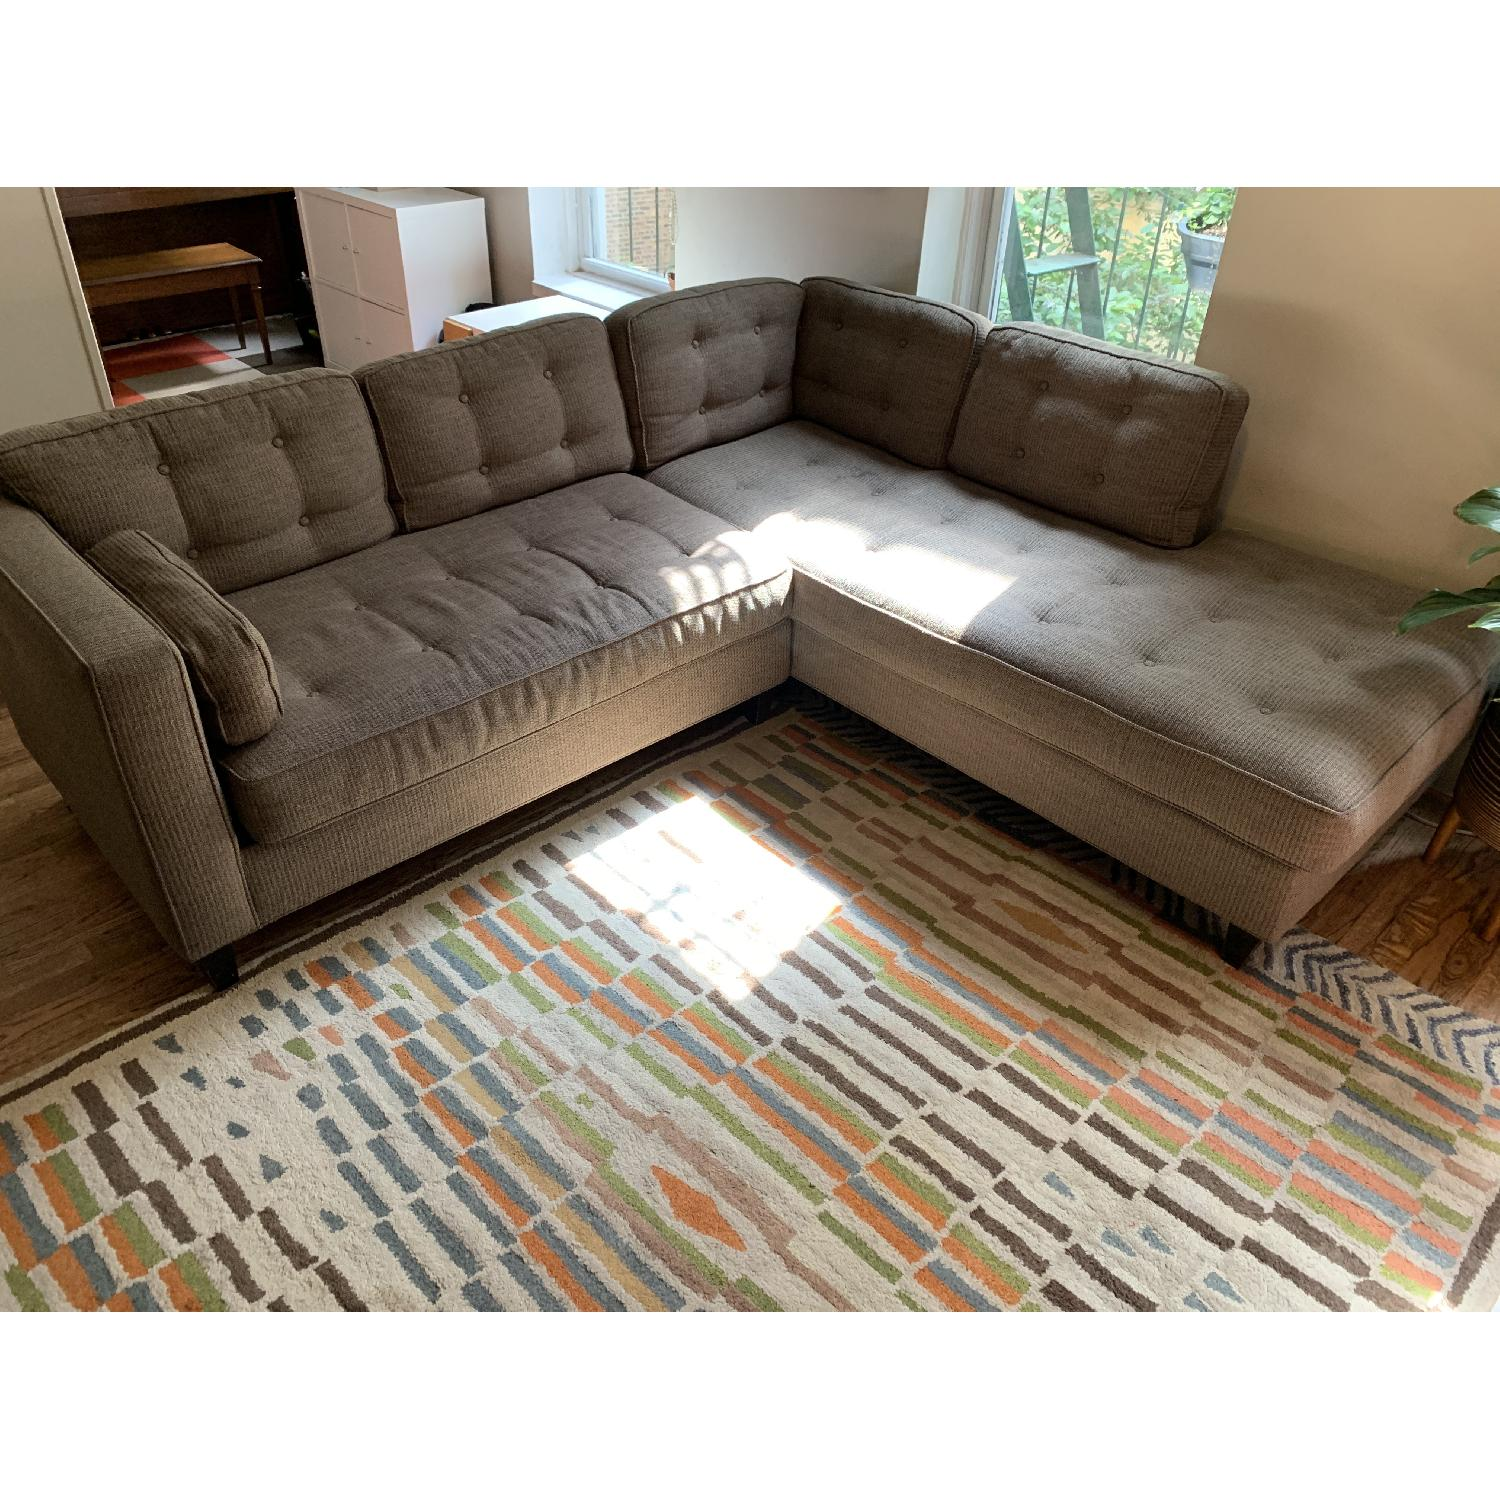 A&G Merch Greenpoint Sectional Sofa-2